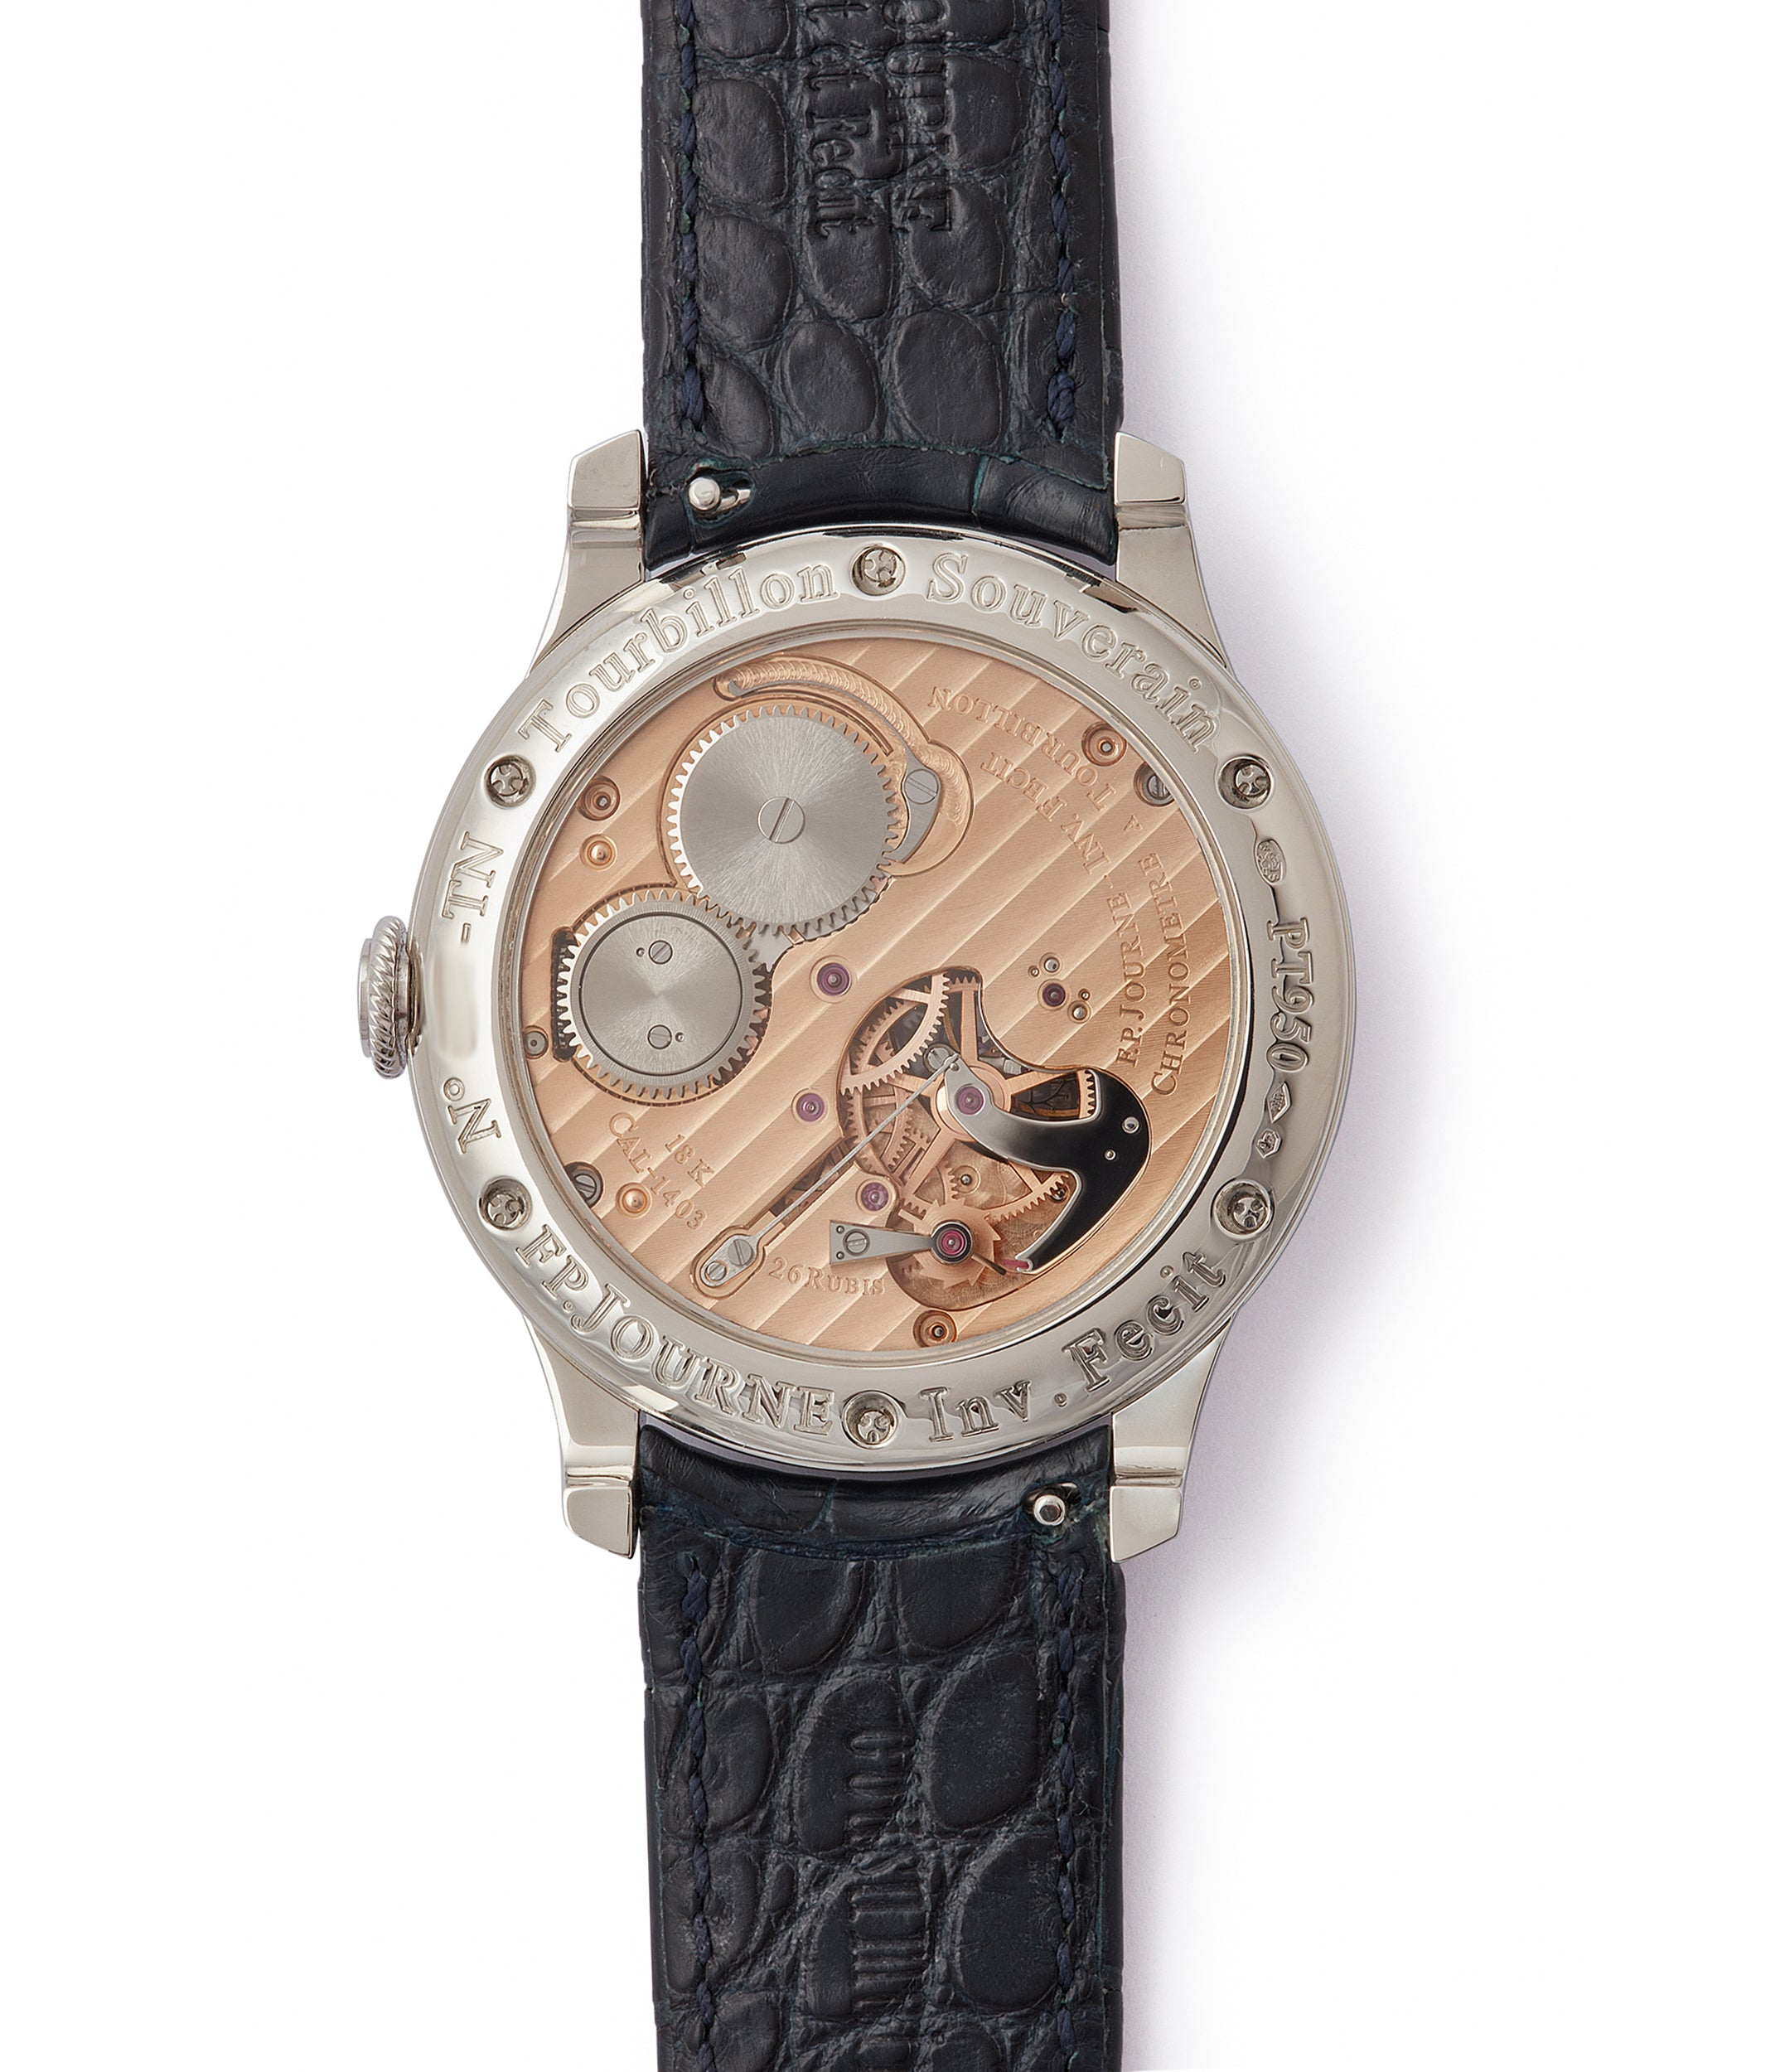 Cal. 1403 F. P. Journe Tourbillon Souverain TN dead-beat seconds 40mm platinum pre-owned watch for sale online at A Collected Man London UK specialist of rare watches